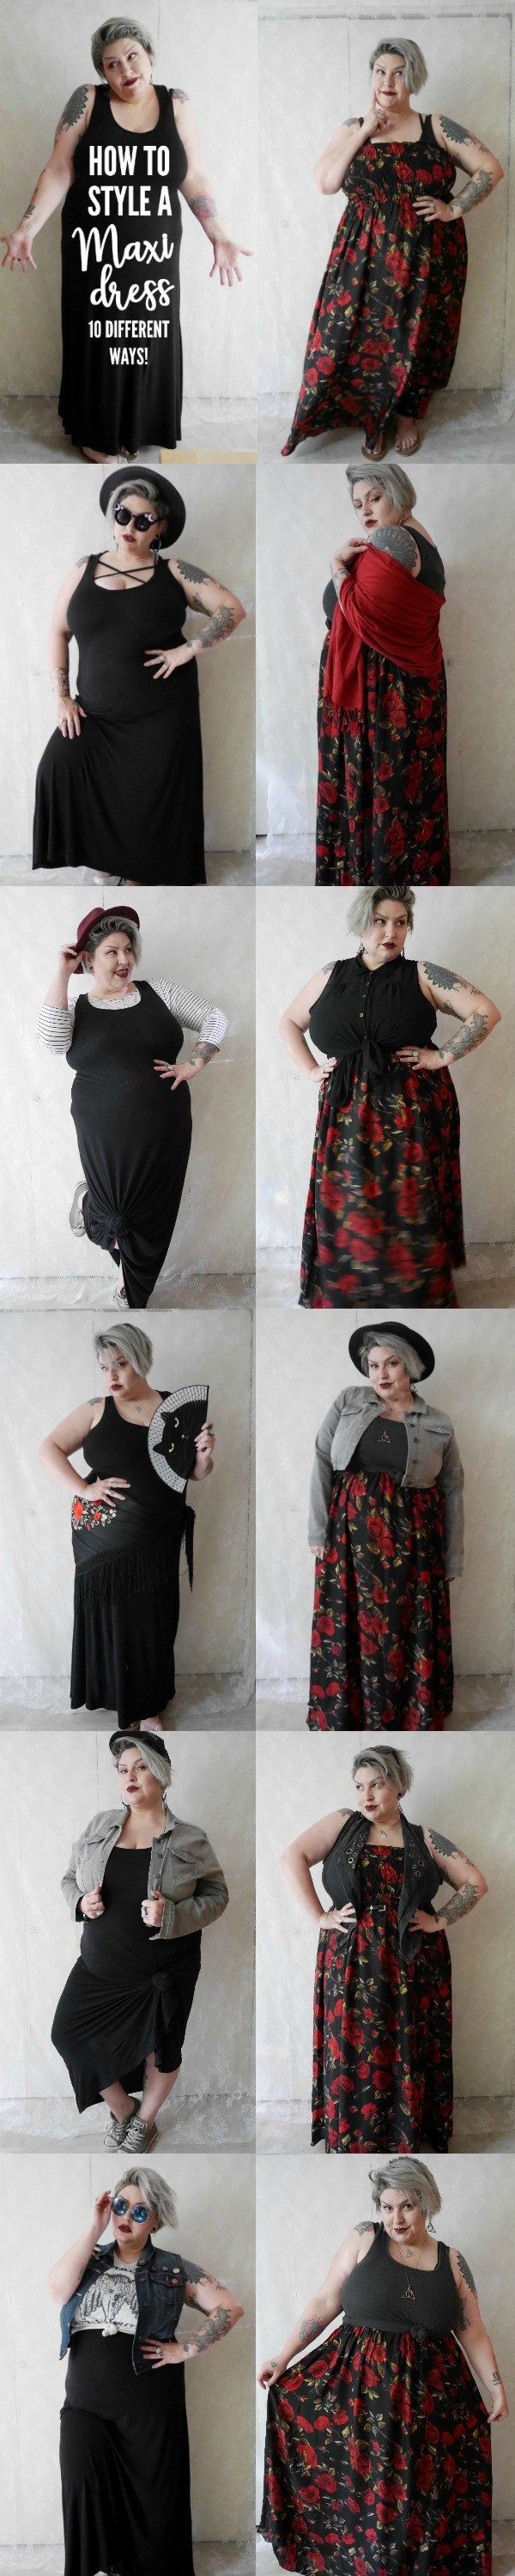 10 ways to style a Plus Size Maxi Dress | Margot Meanie